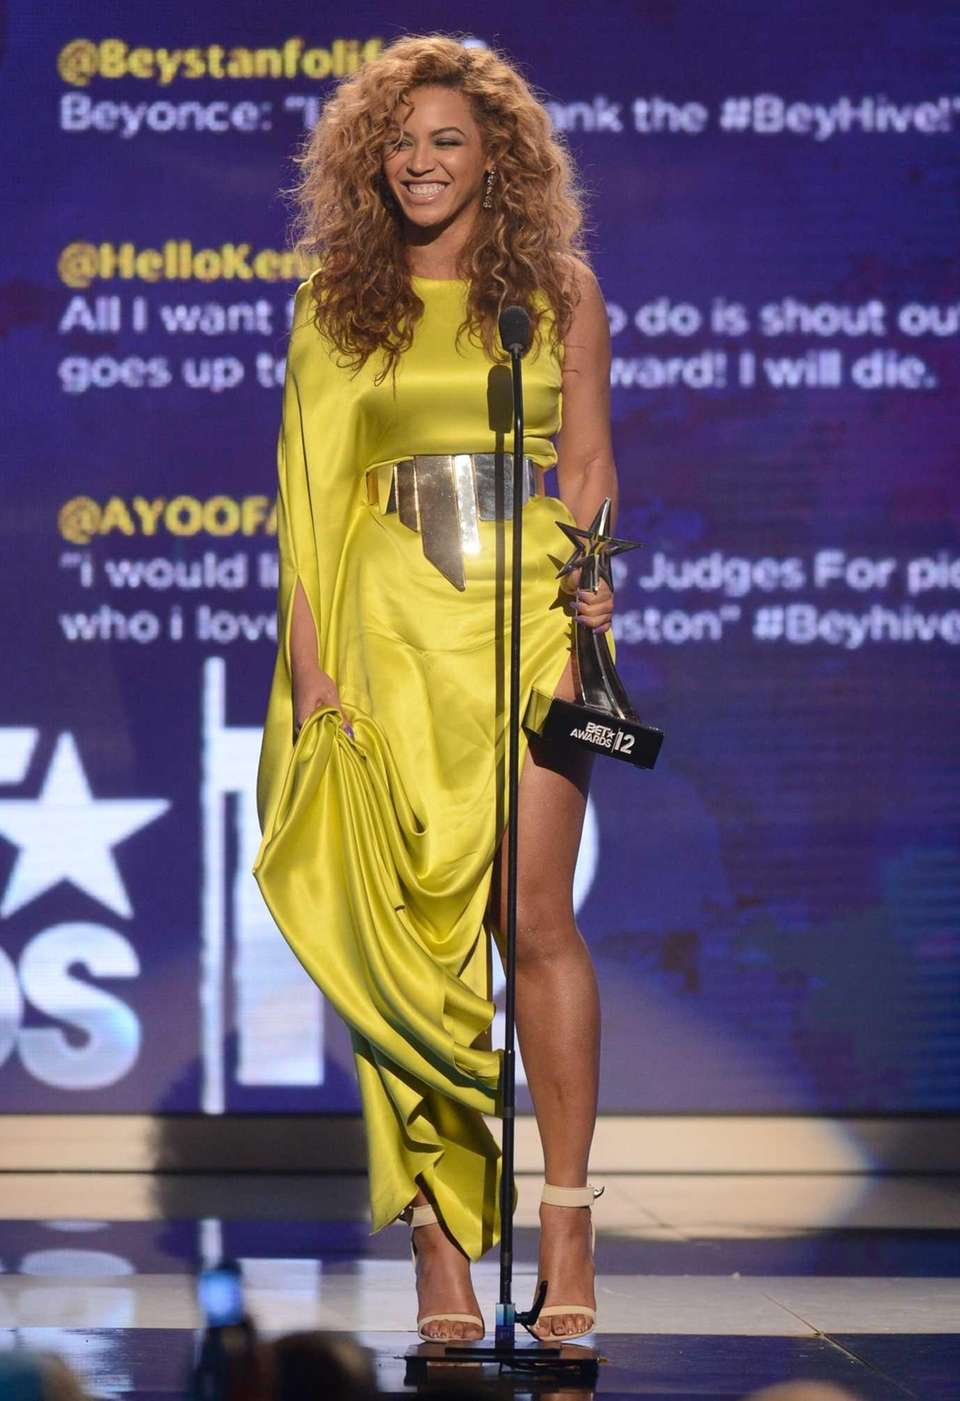 Singer Beyonce accepts the award for Best Female